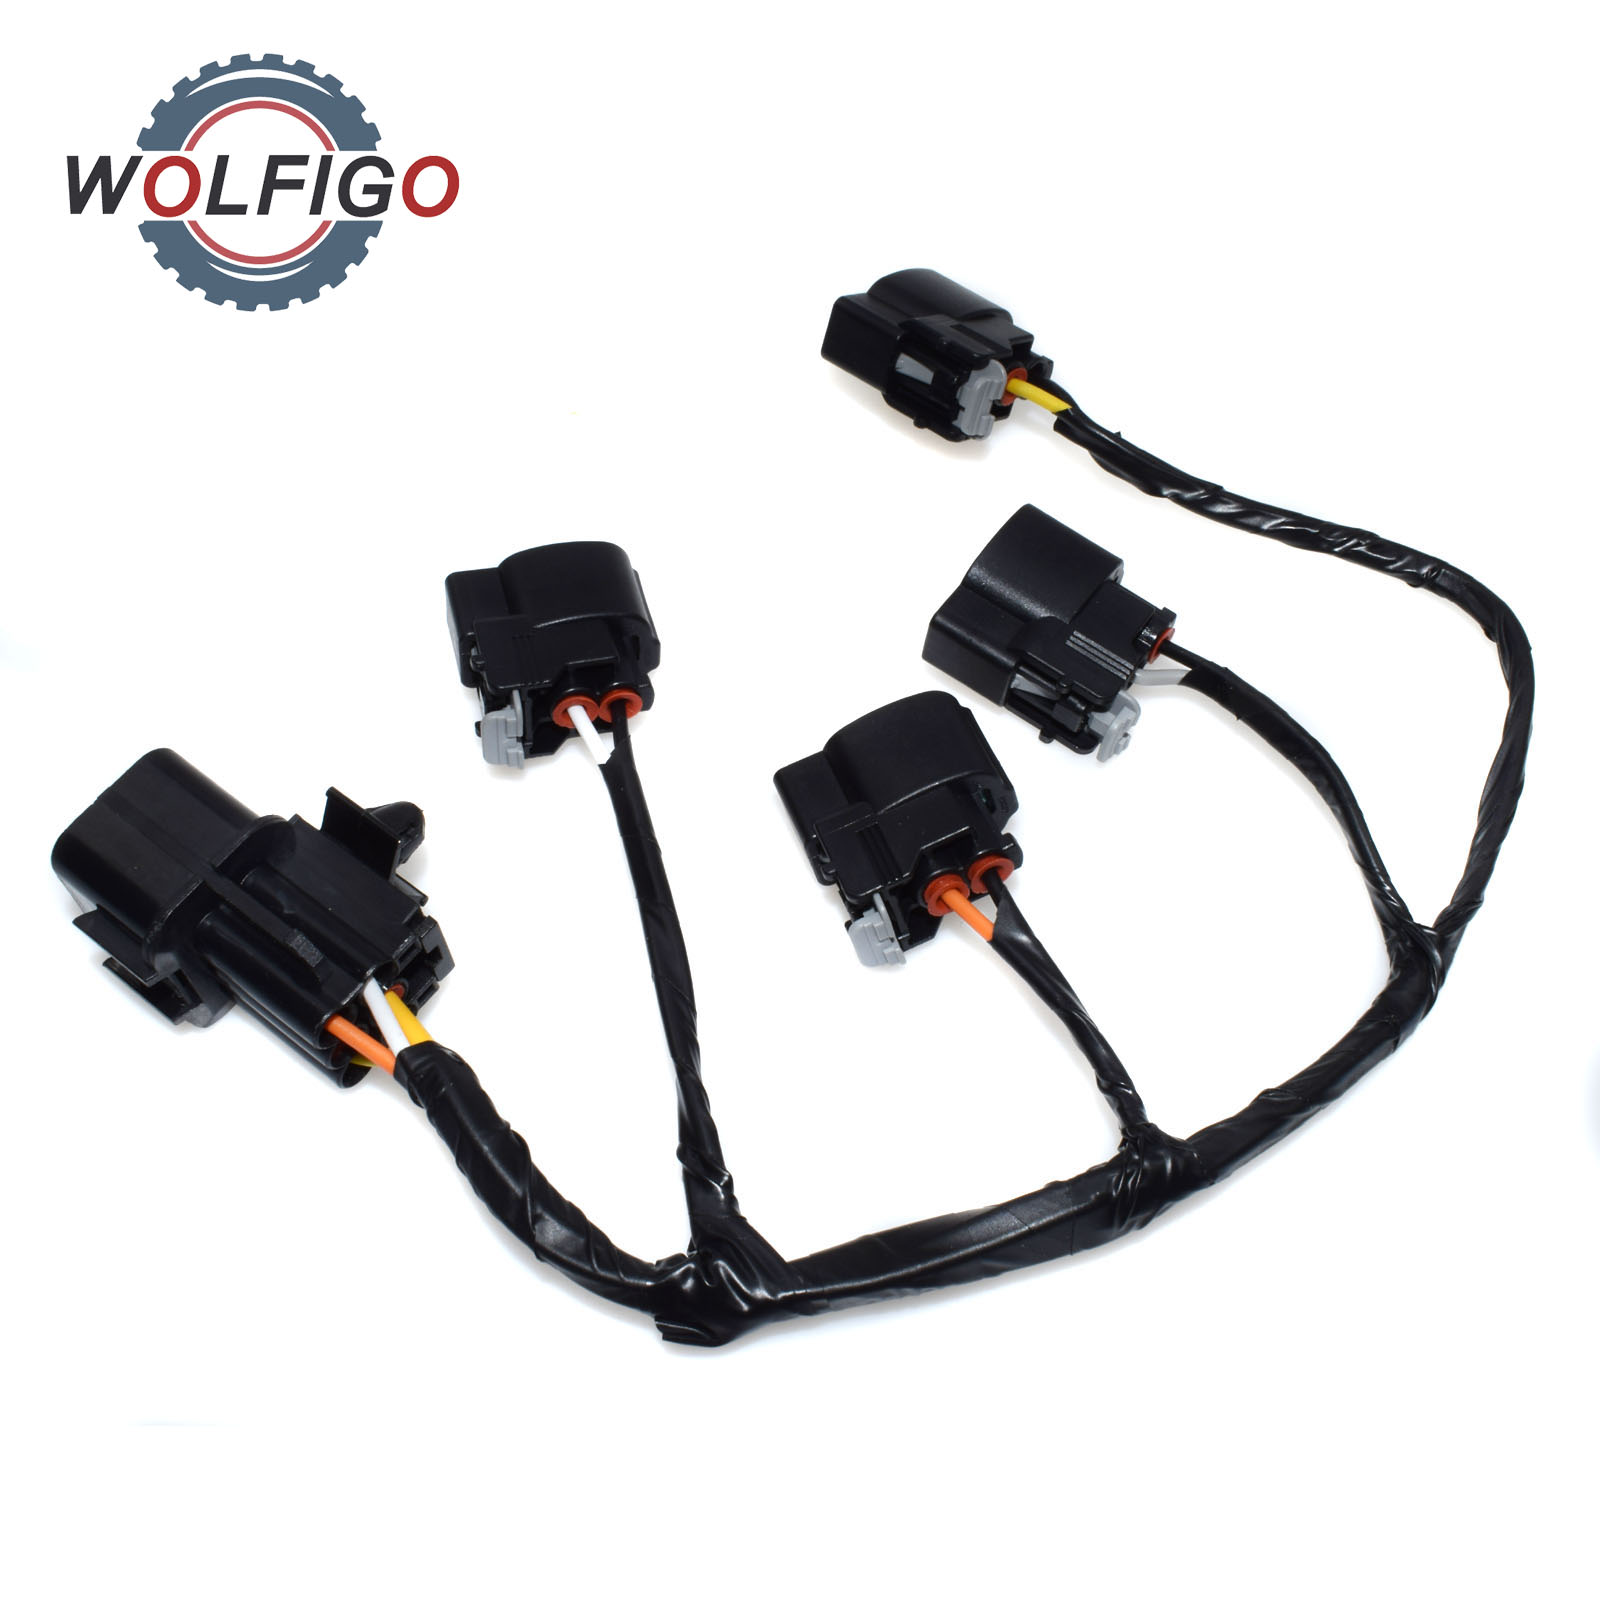 Wolfigo New Ignition Coil Wire Harness For Hyundai Veloster KIA Rio